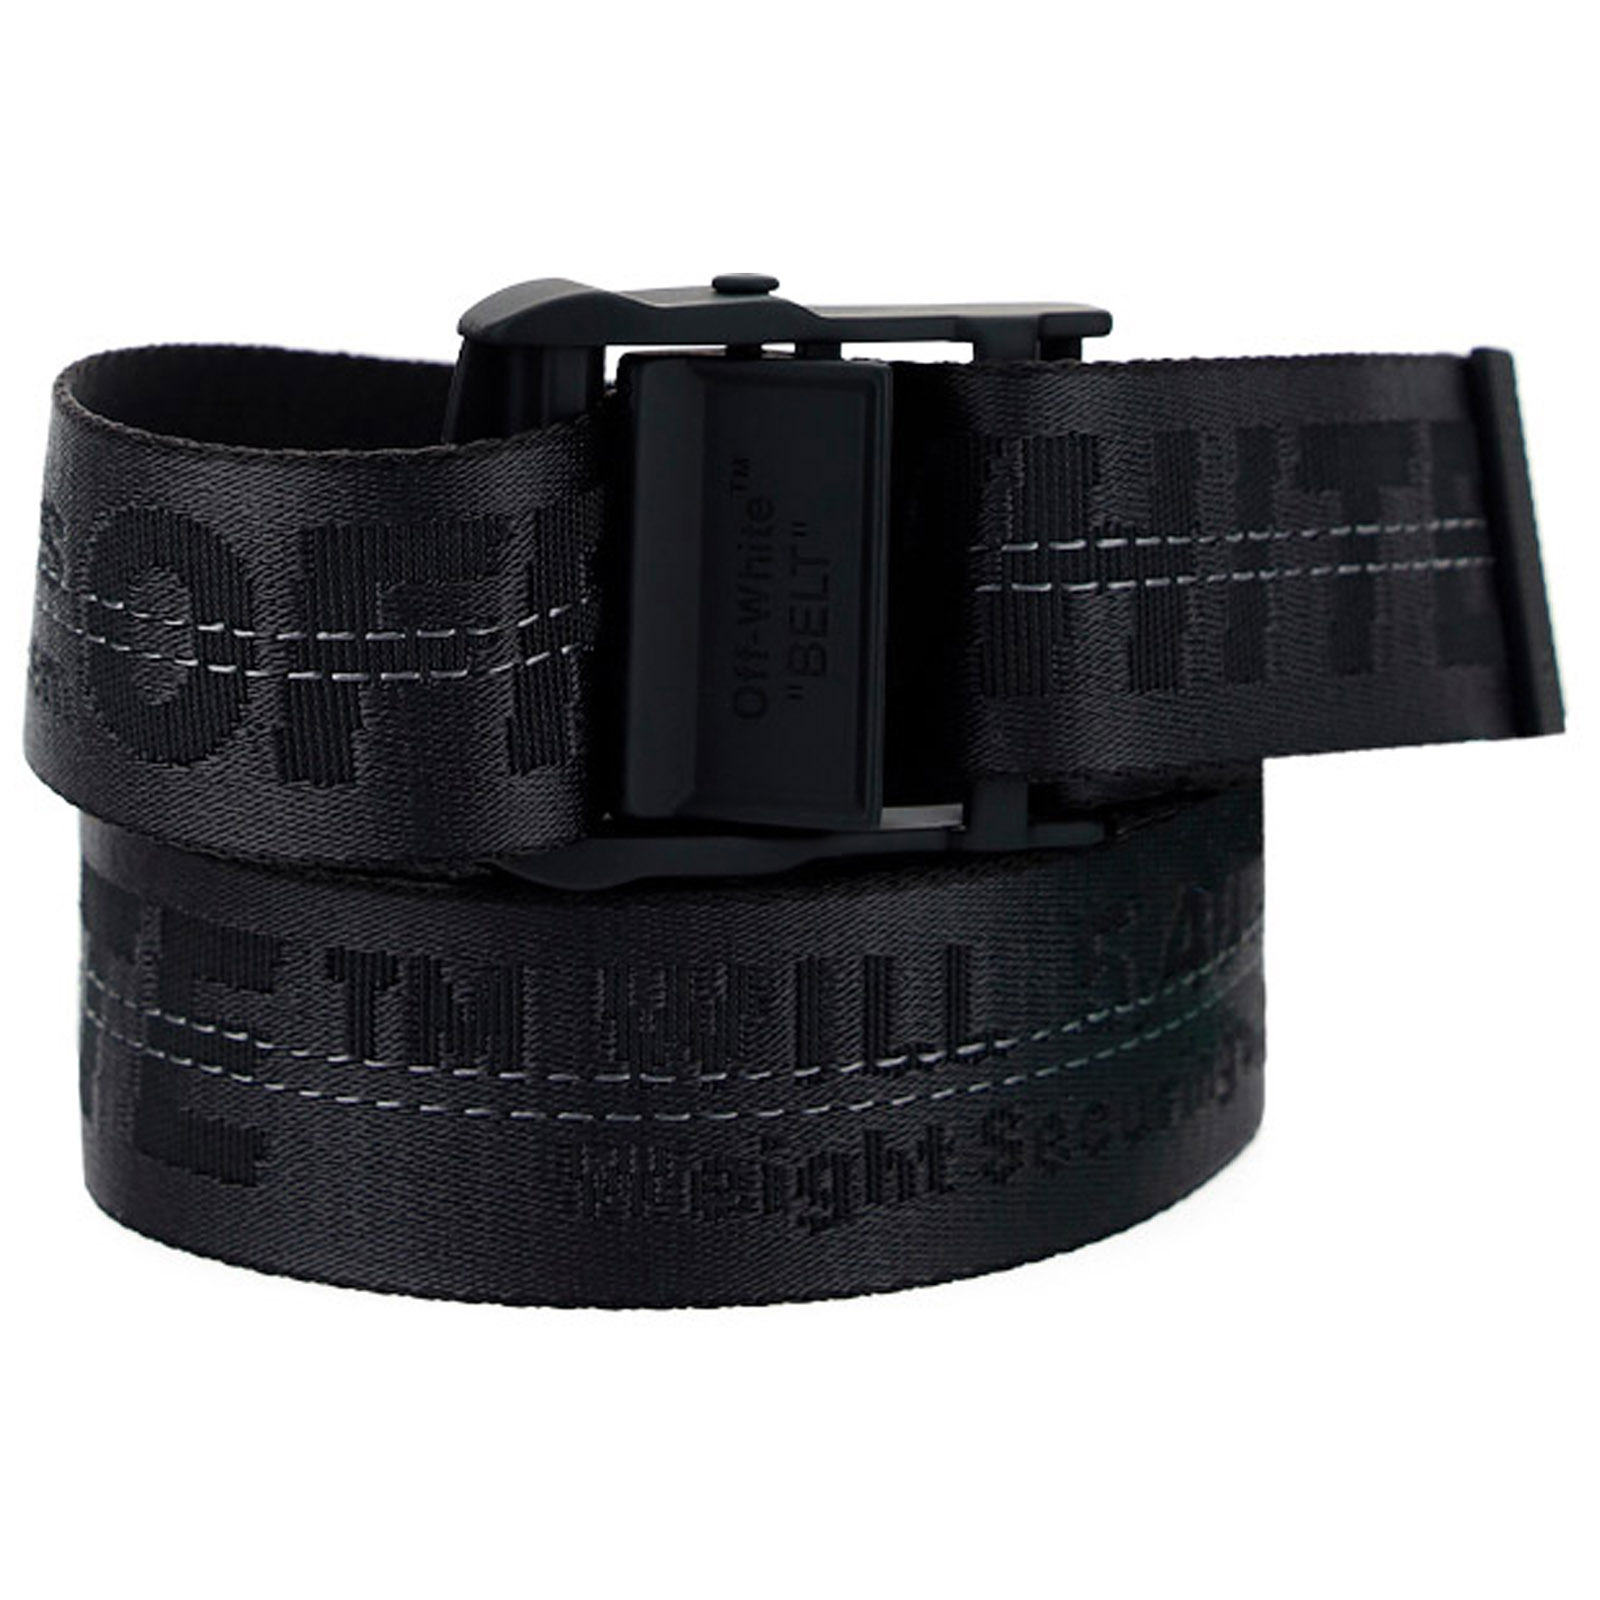 Off-White MEN'S BELT  INDUSTRIAL